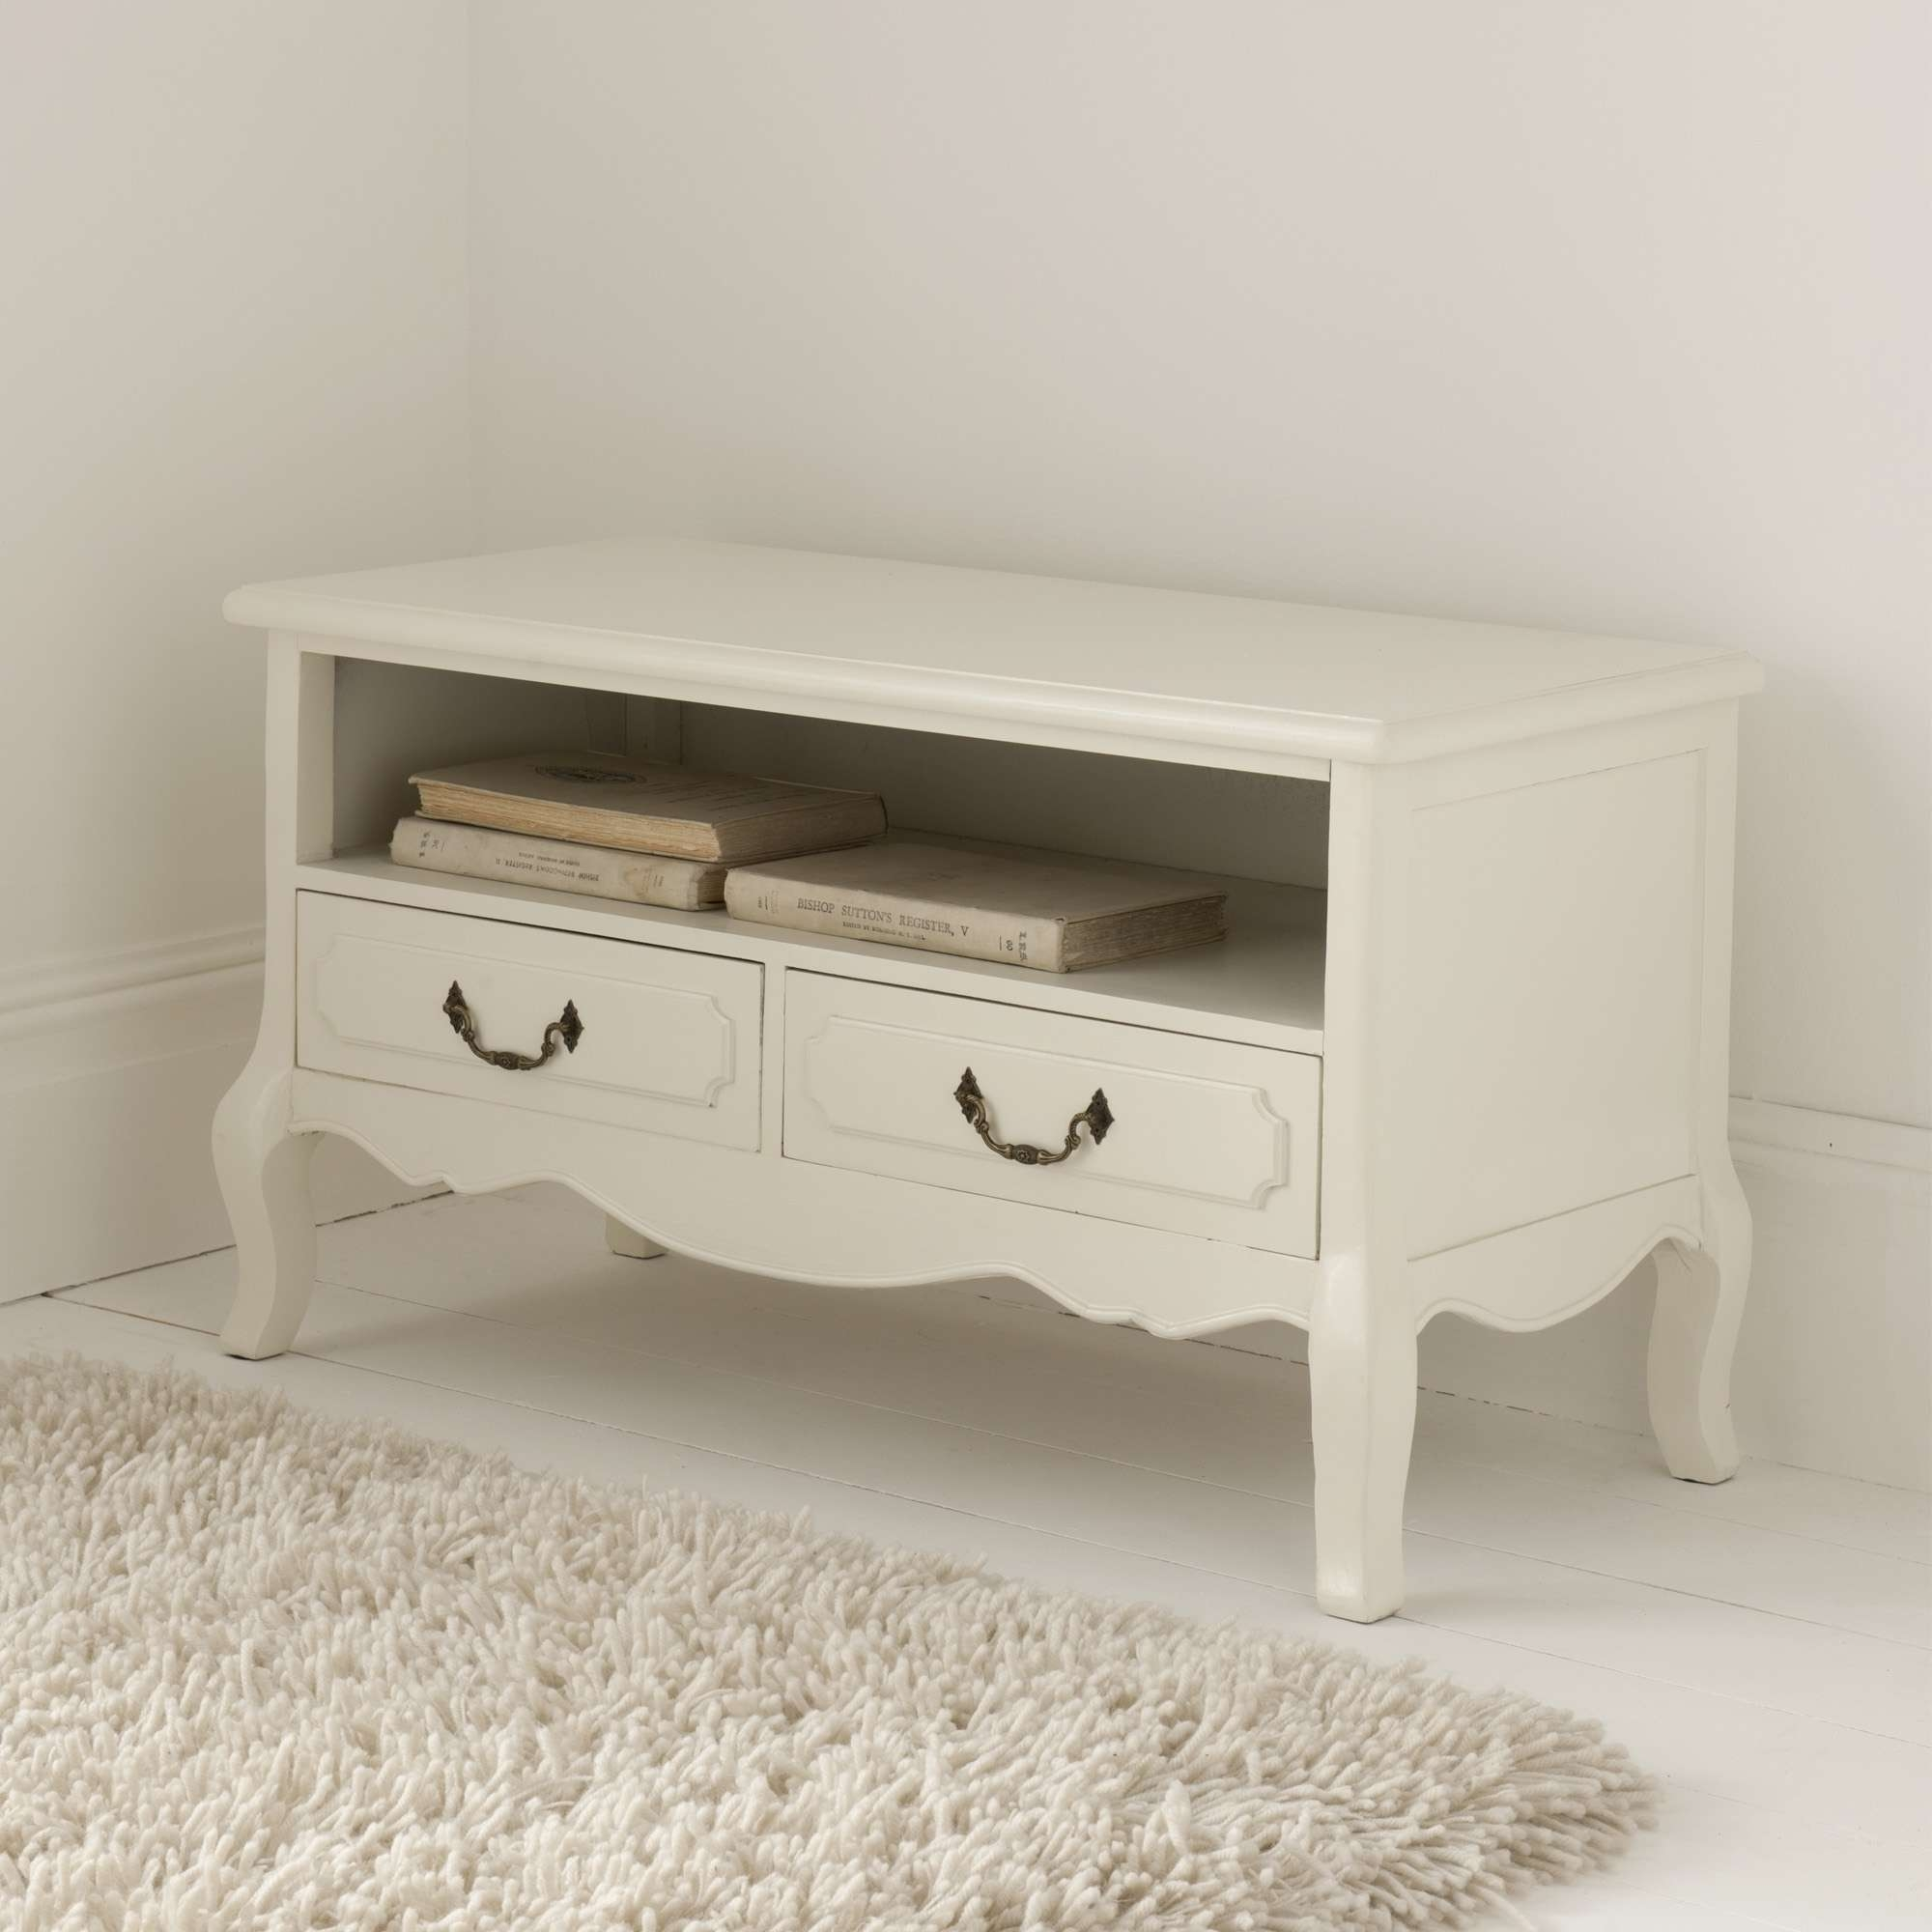 Antique French Tv Stand | Antique White Furniture Range With Antique Style Tv Stands (View 3 of 15)